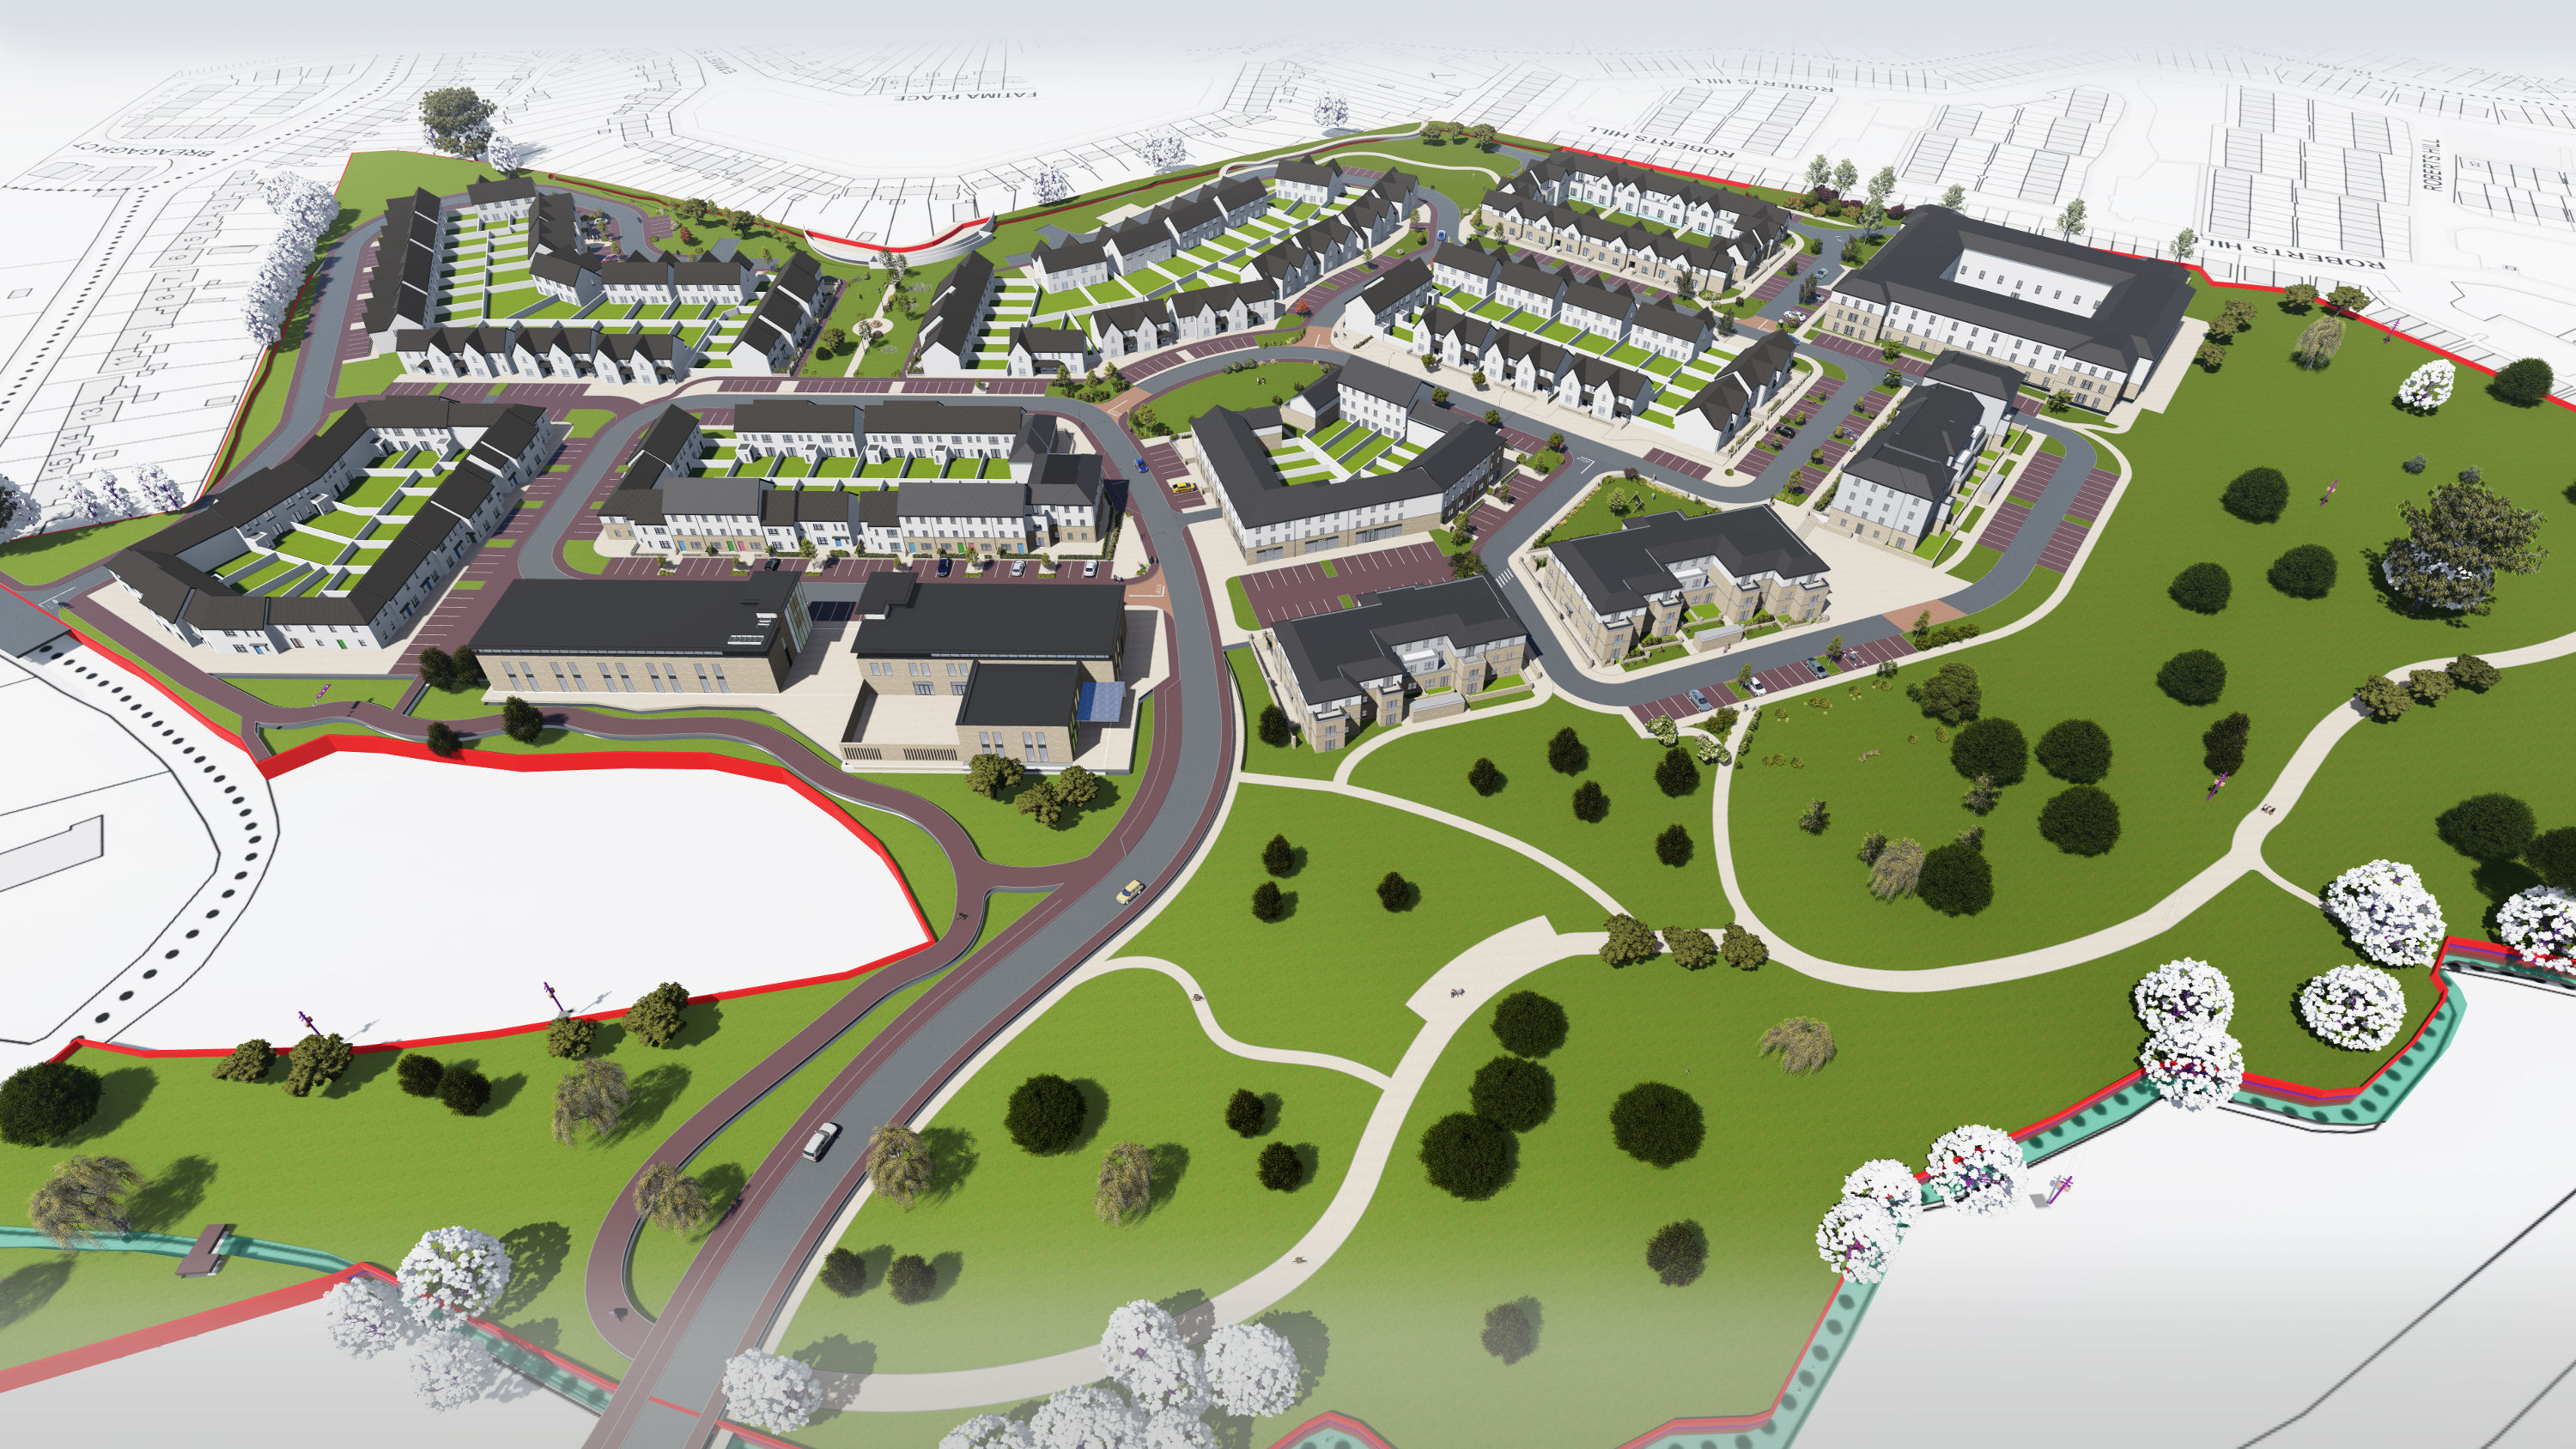 Planning success for a large mixed-use development at Daly's Hill, Kilkenny. Architecture Ireland, Urban Design, Dublin/Cork/Kerry Architecture